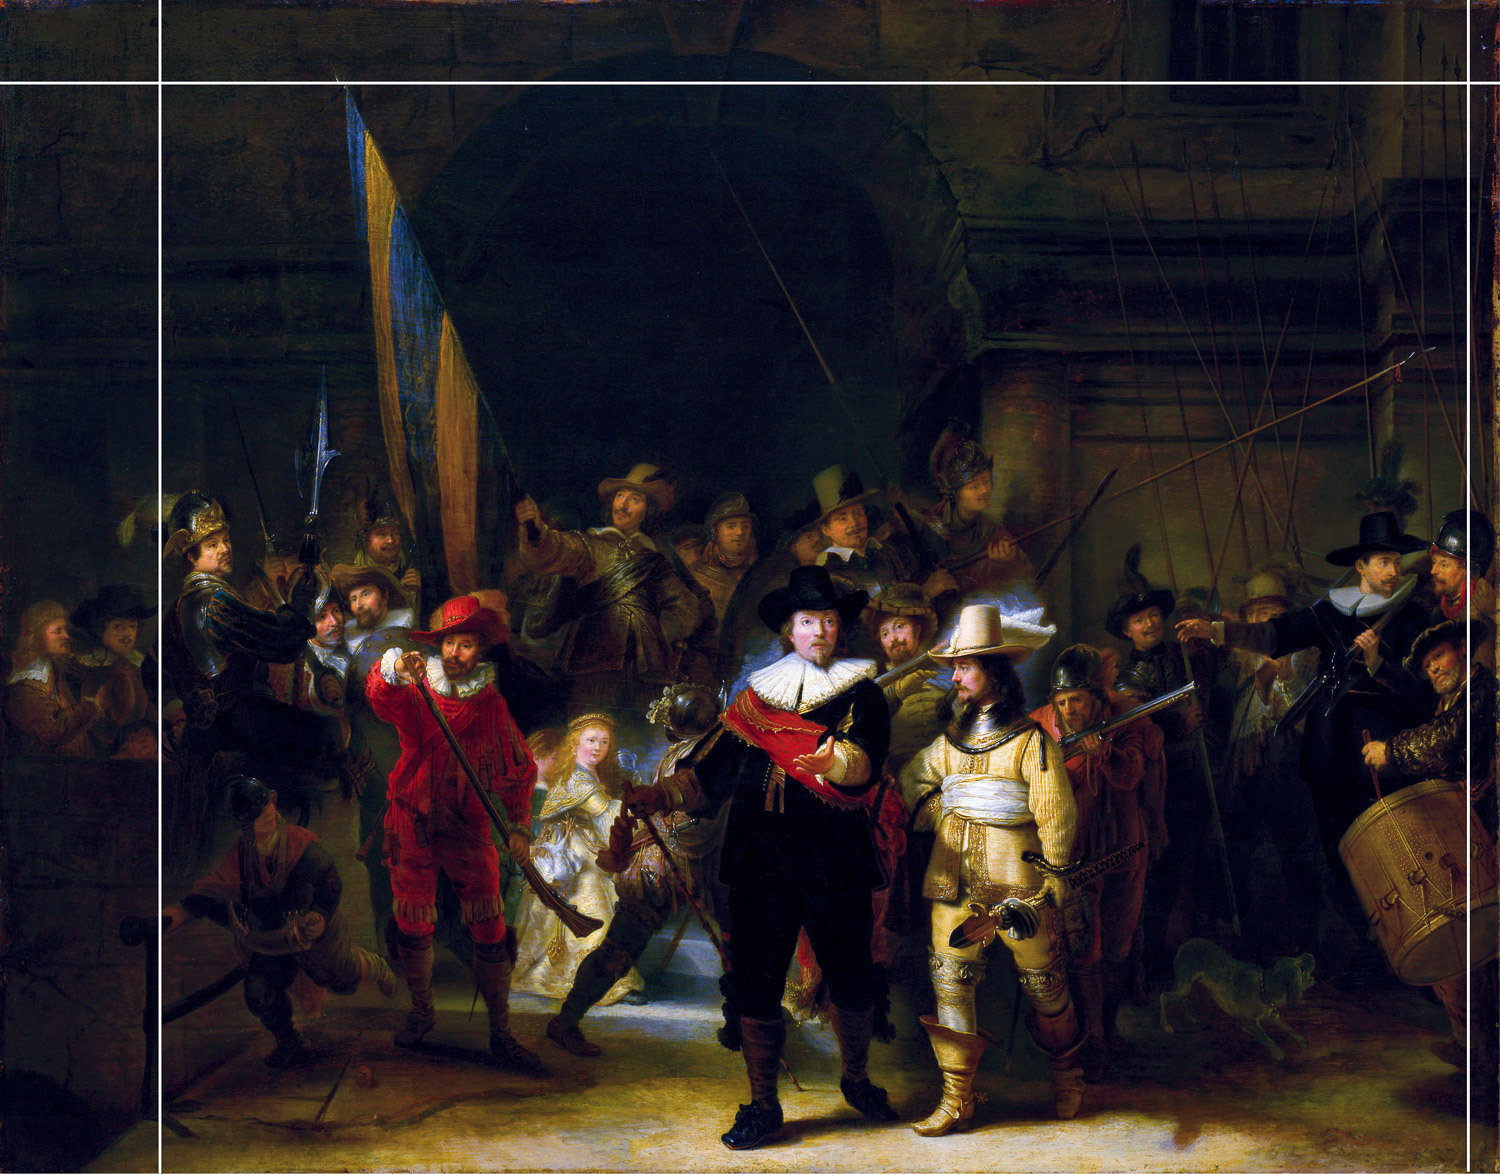 Gerrit Lundens version of 'The Night Watch'